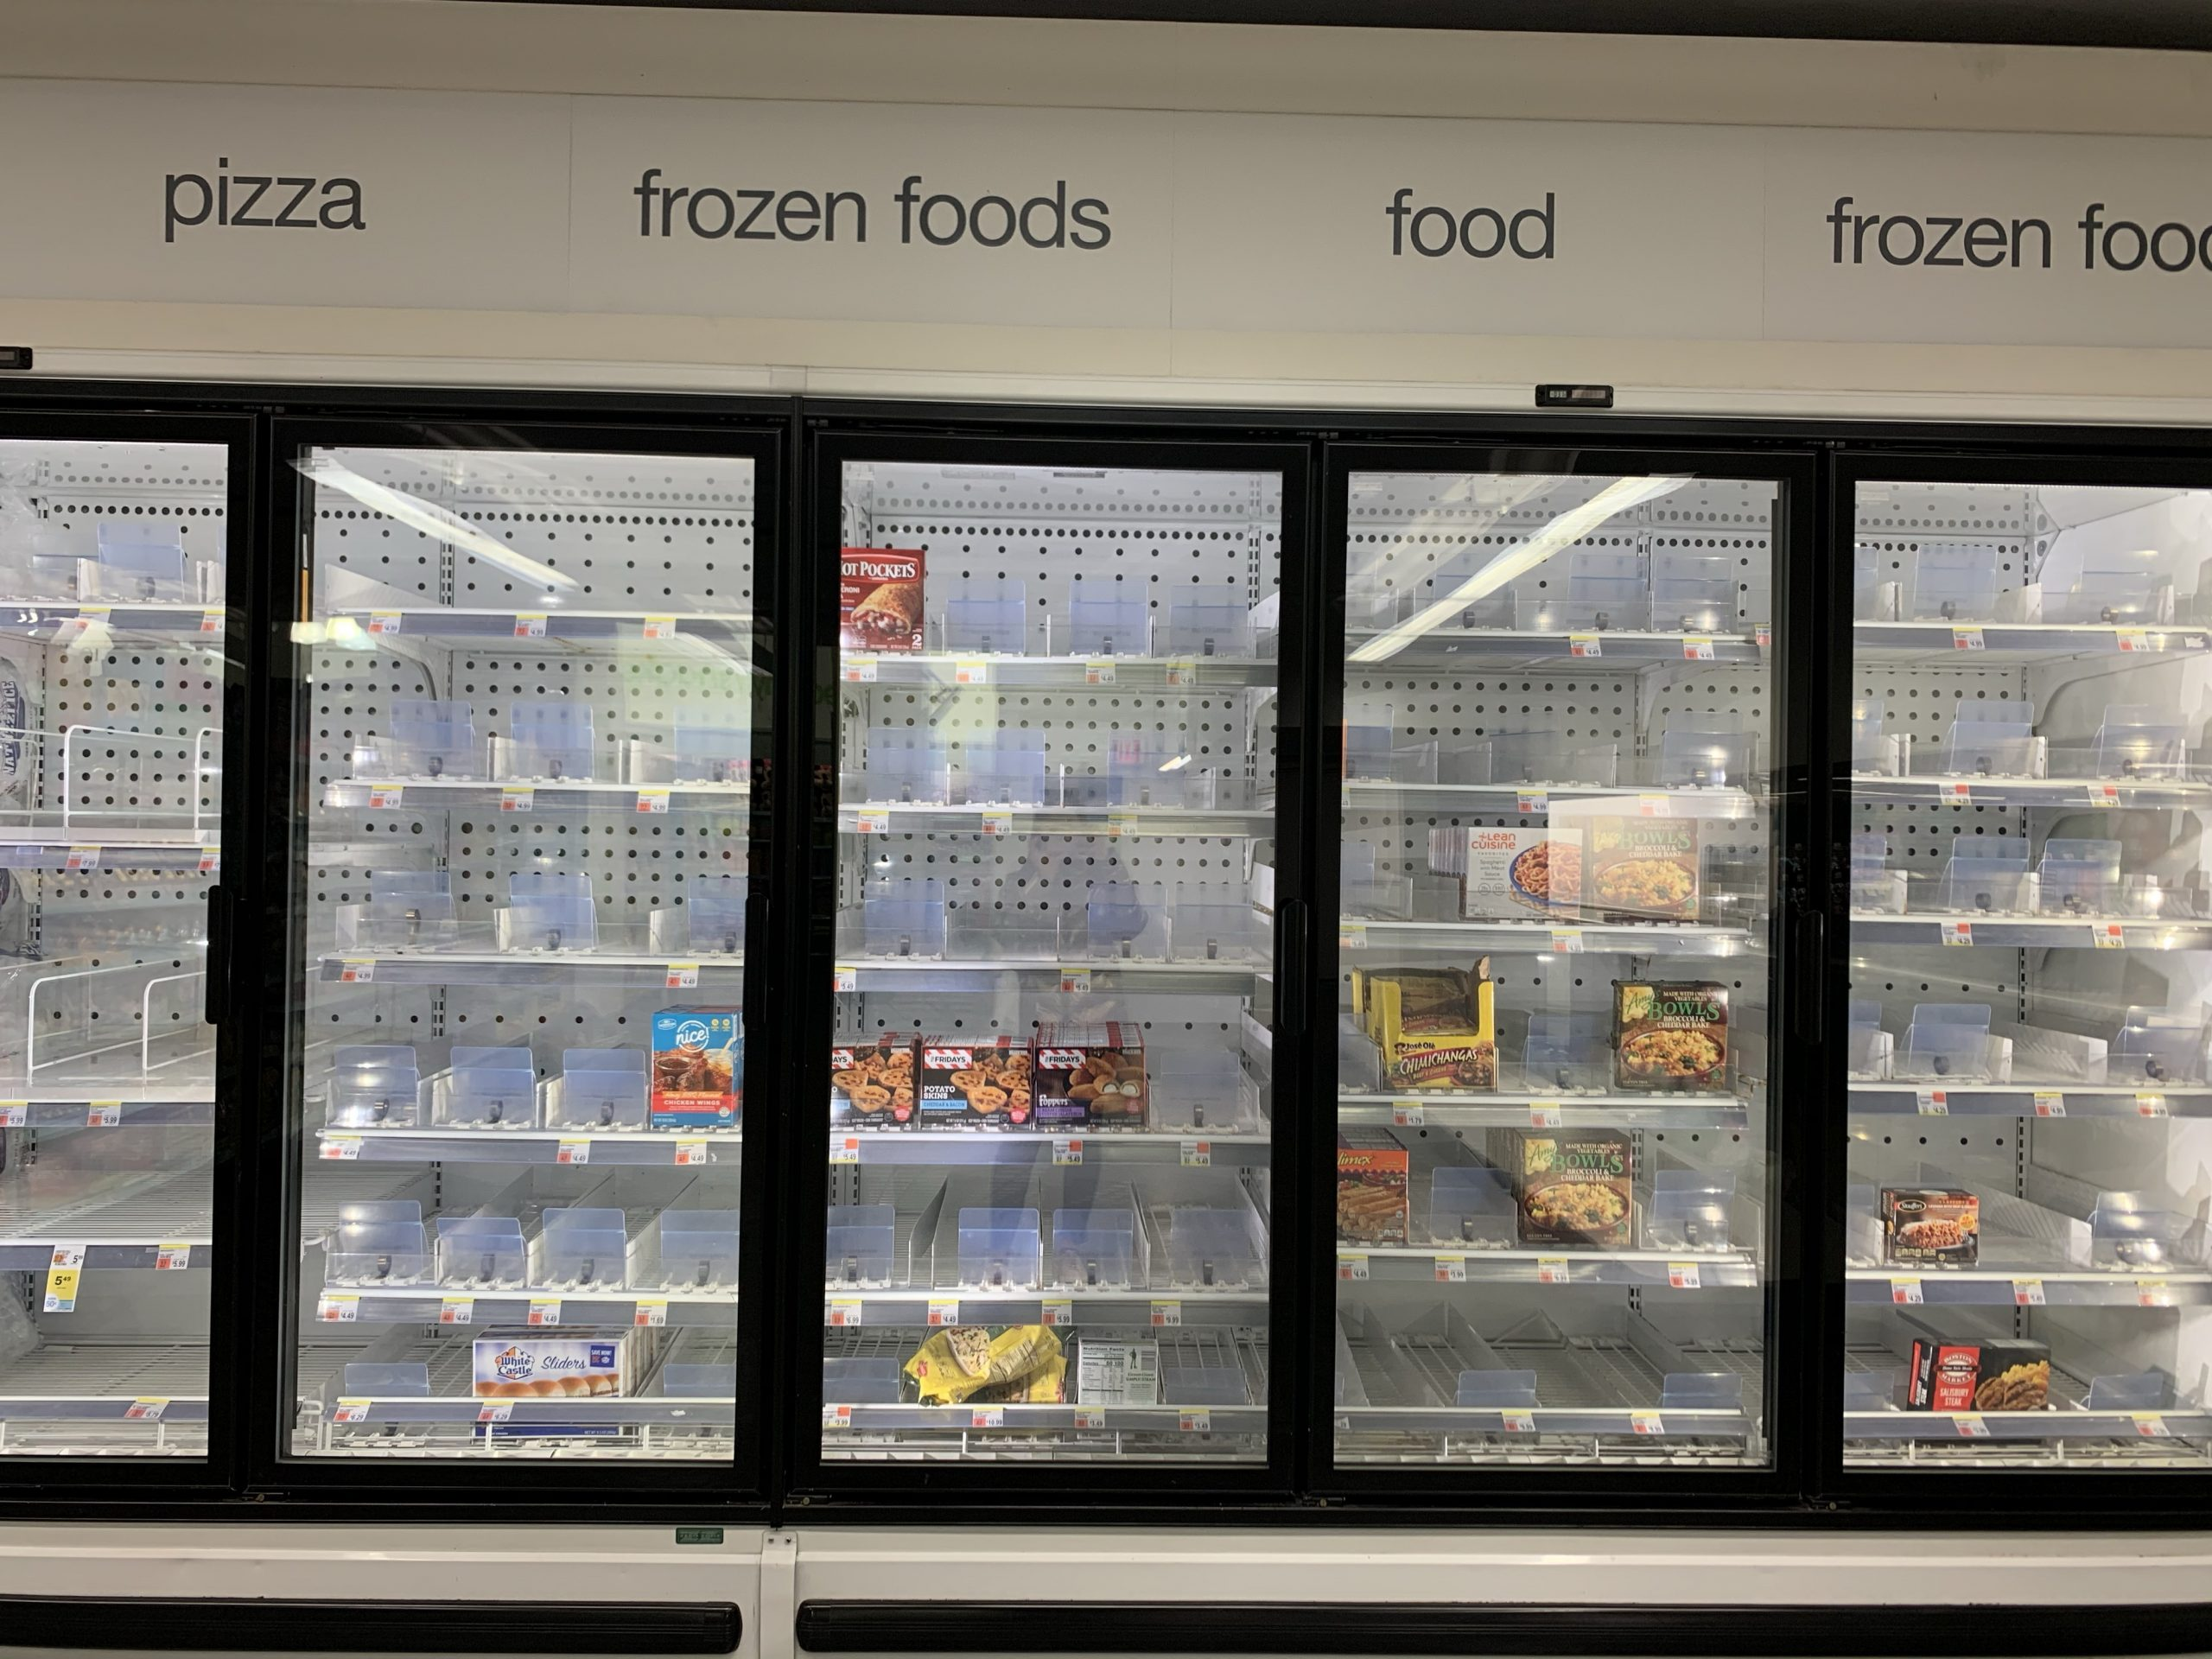 Empty shelves of the frozen foods section